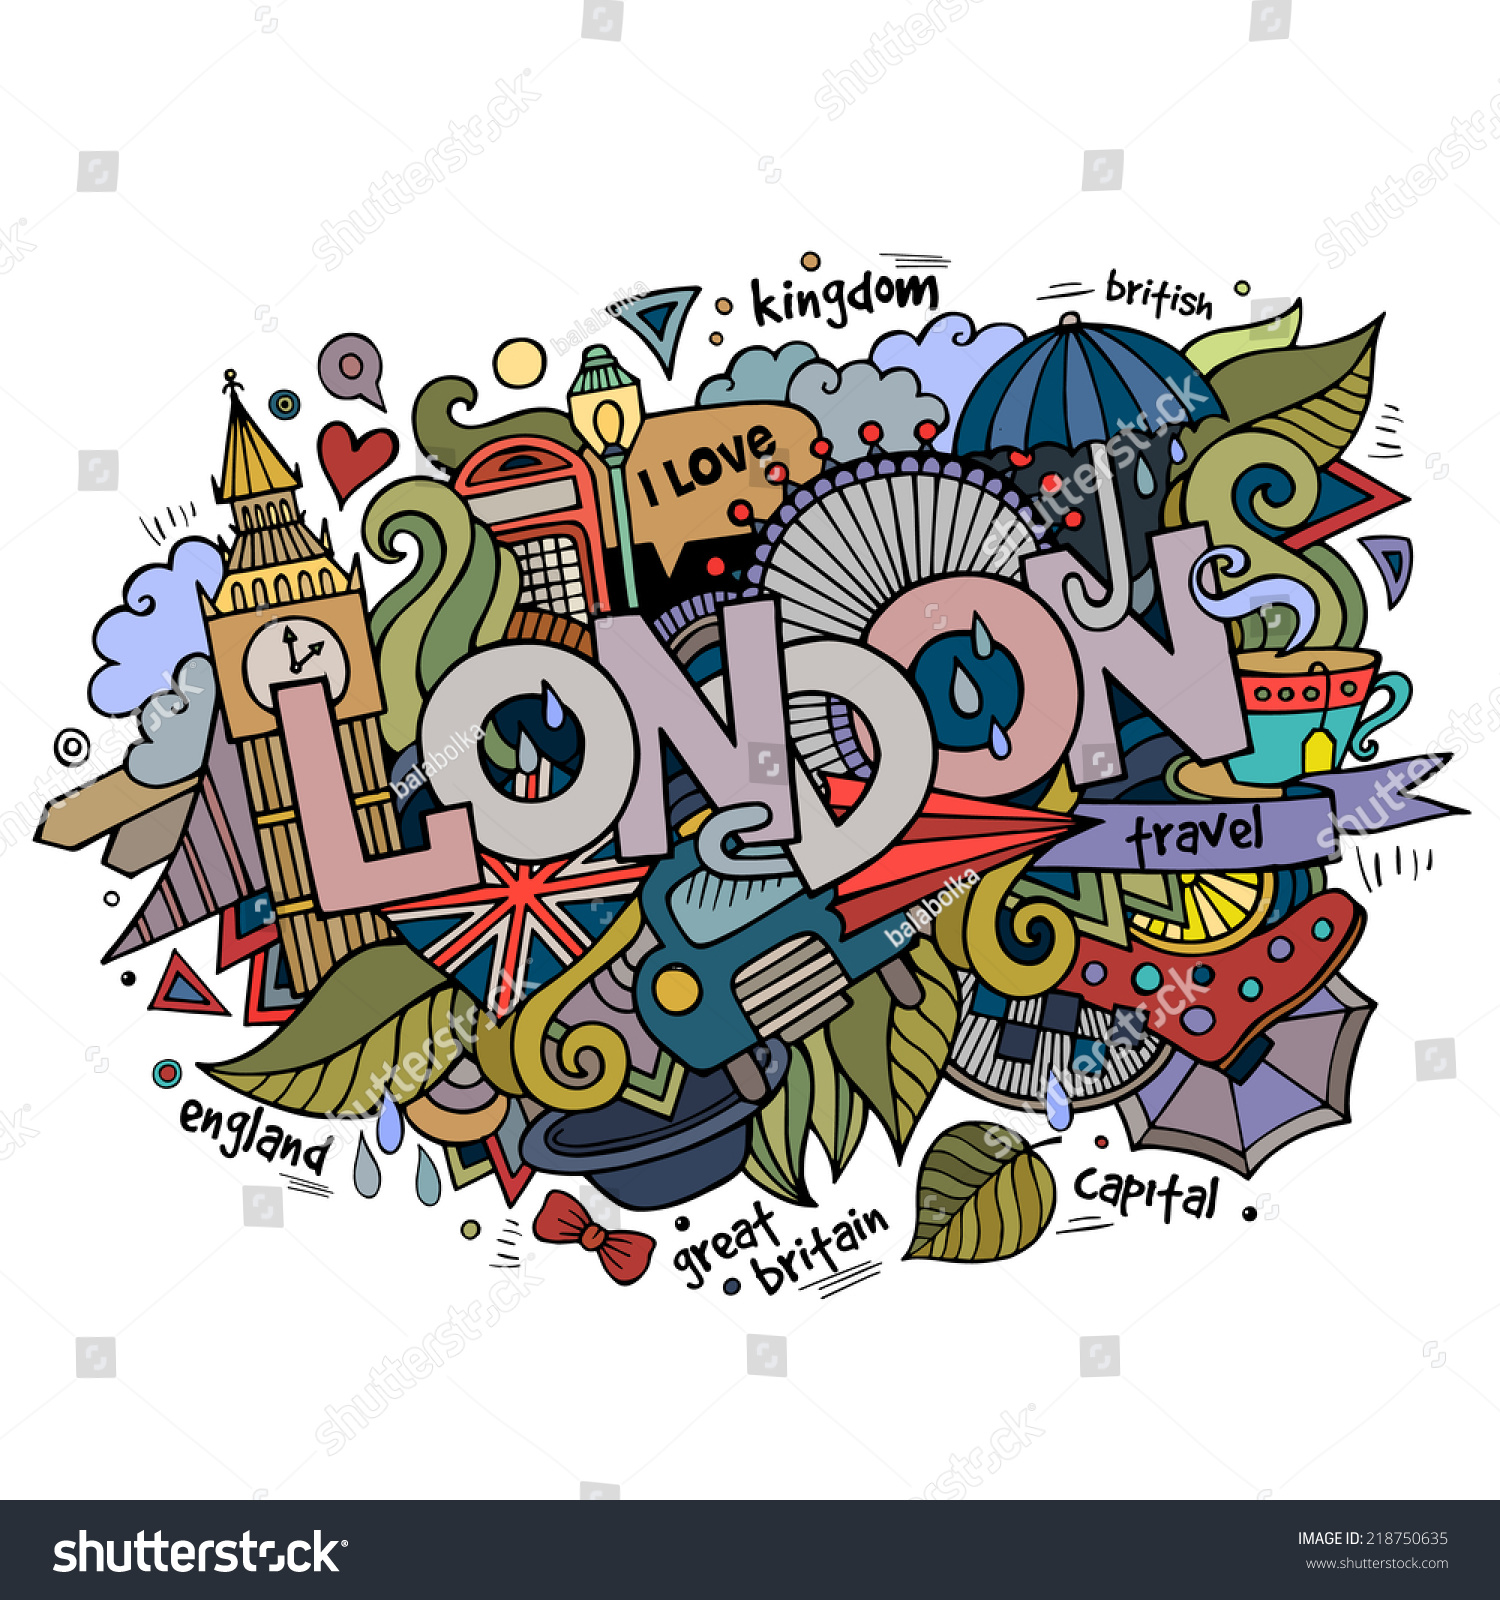 Stock vector music hand lettering and doodles elements - London Hand Lettering And Doodles Elements Background Vector Illustration